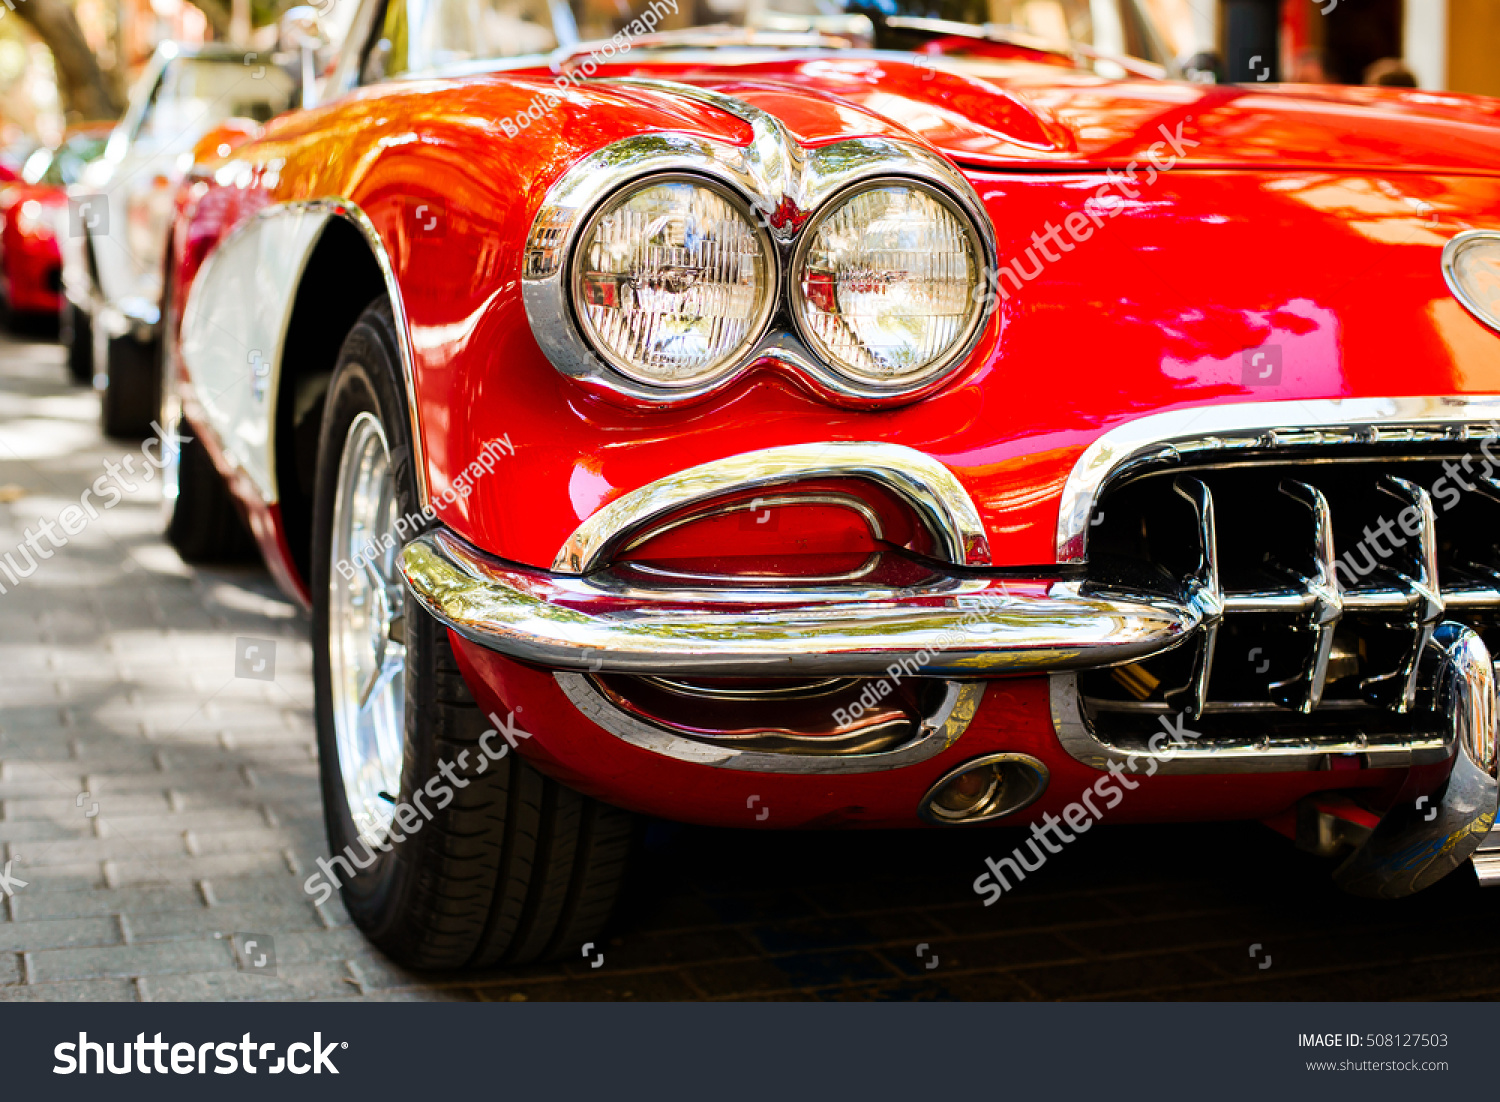 Close-up of headlights of red vintage car. Exhibition #508127503